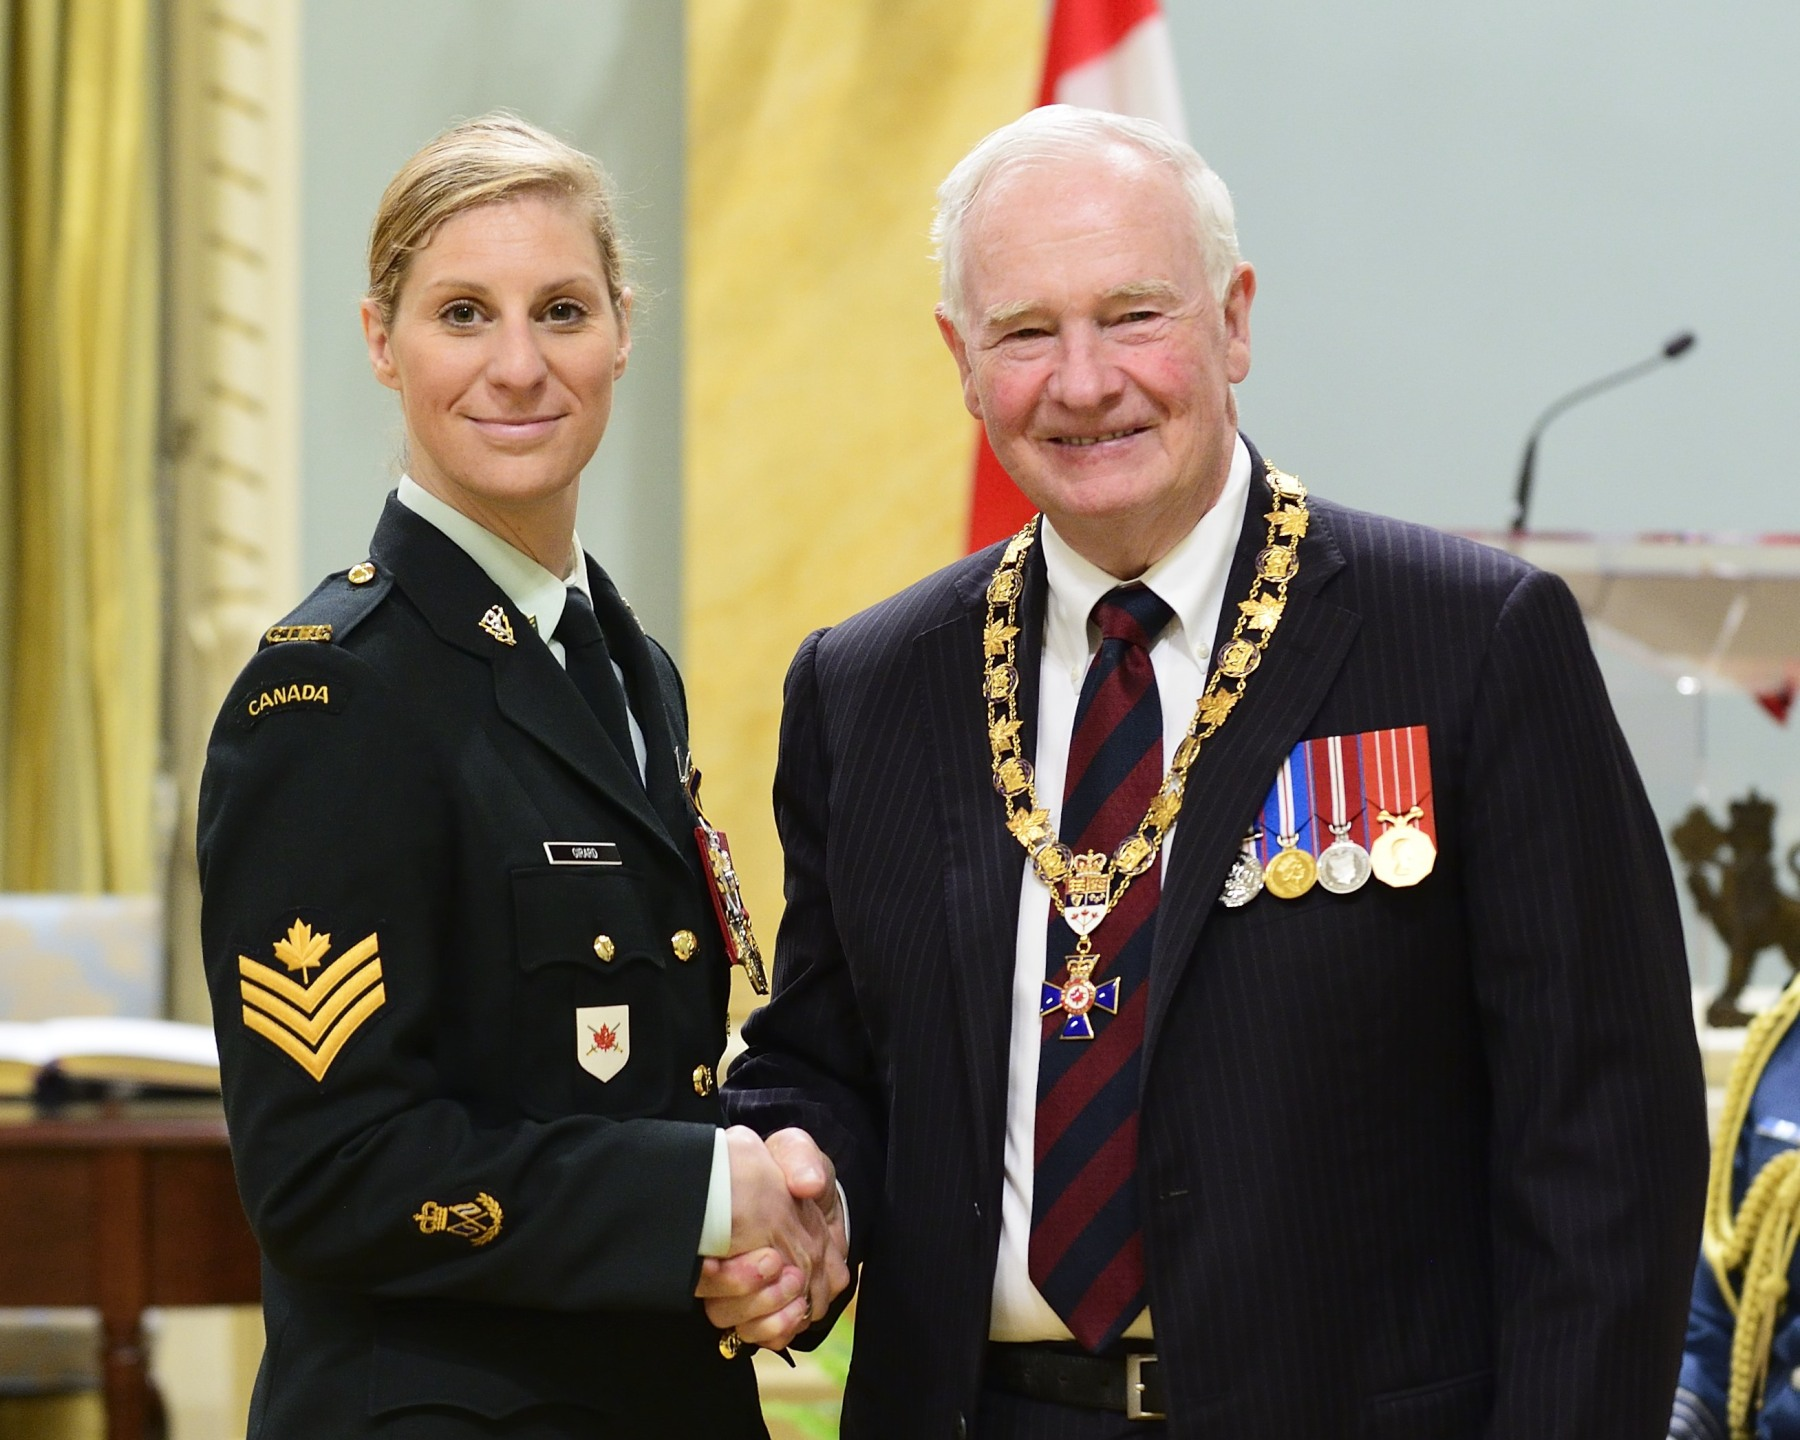 His Excellency presented the Order of Military Merit at the Member level (M.M.M.) to Sergeant Rachel Girard, M.M.M., C.D., 2nd Canadian Division Support Group Signal Squadron, Richelain, Quebec.